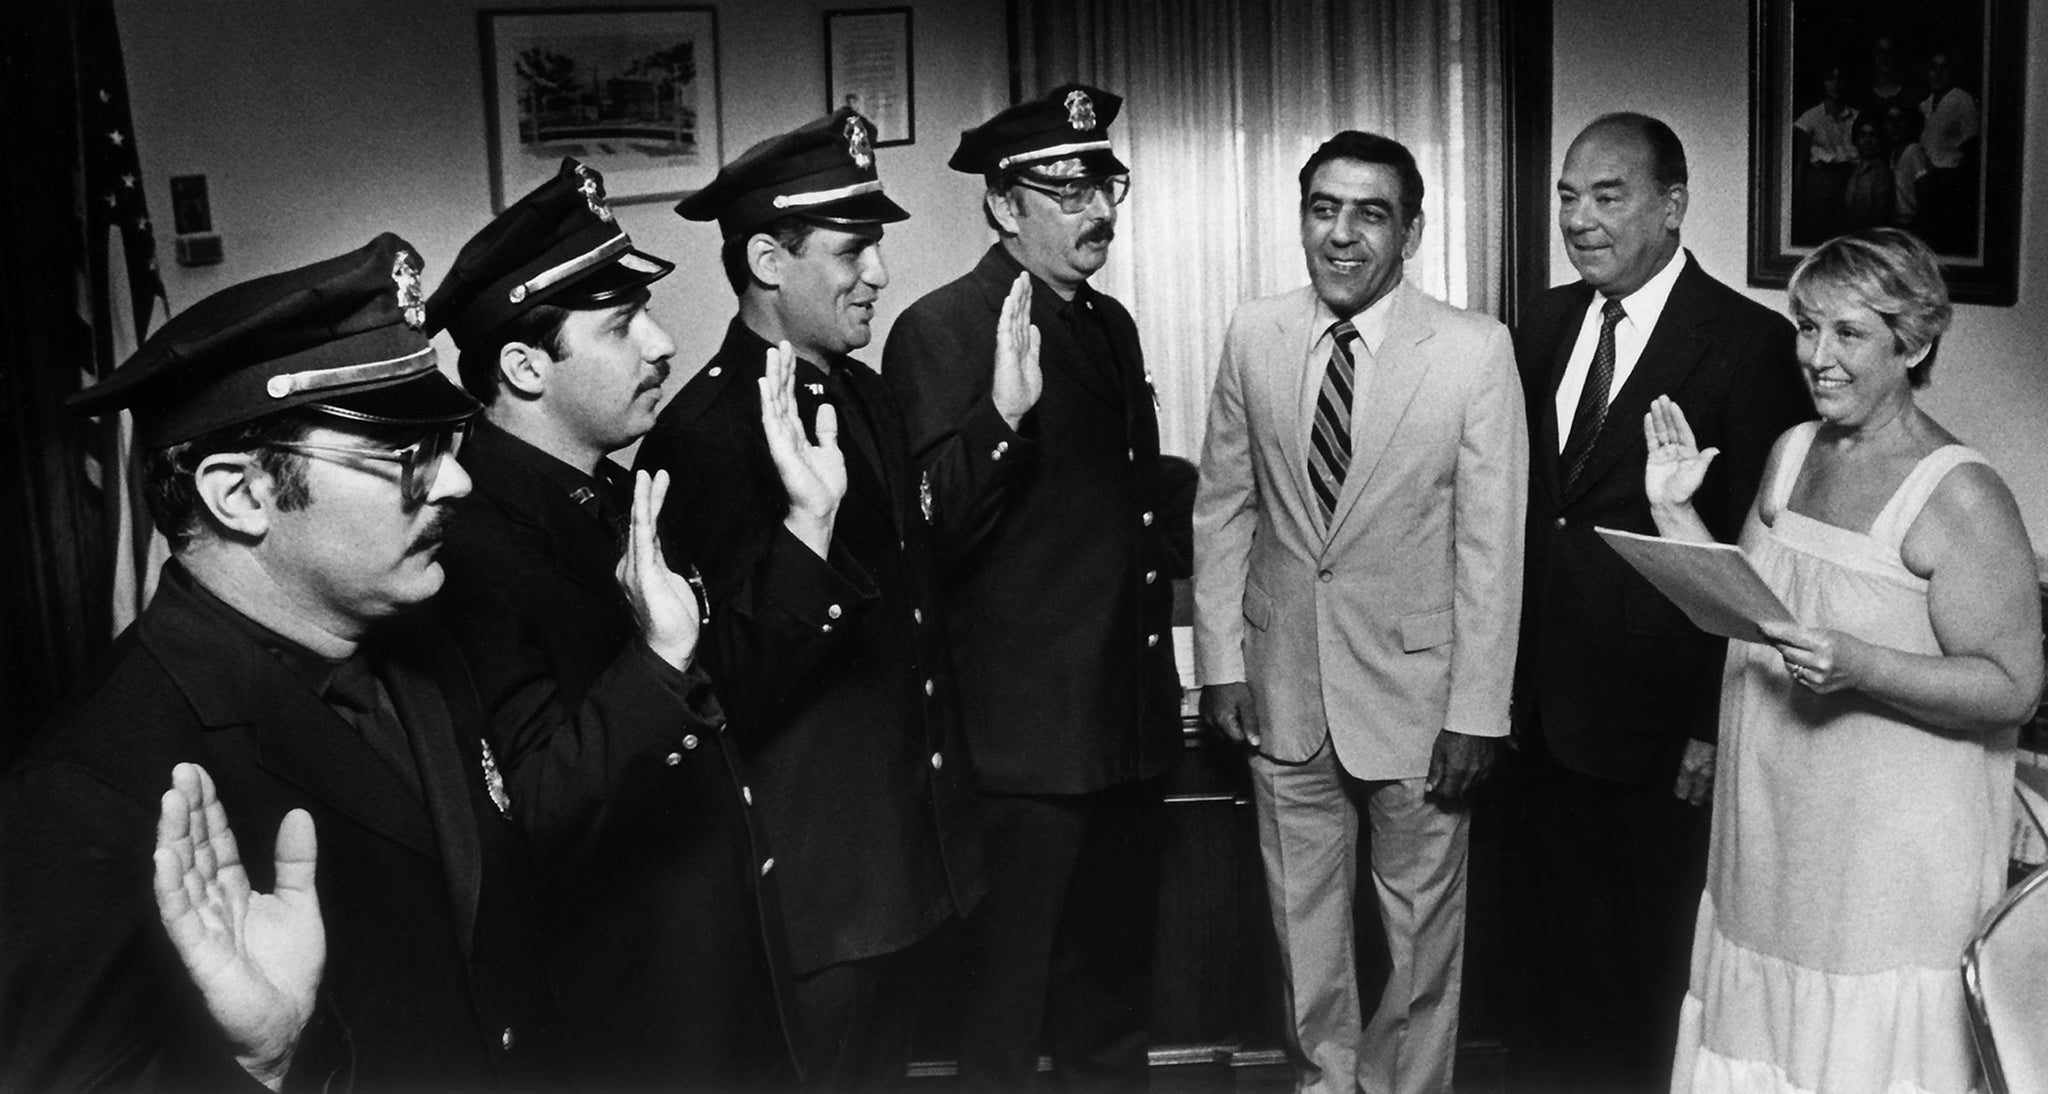 Mayor Peter Torigian standing with Chief Robert Costello and City Clerk Natalie Maga as she swears in Robert Lynskey, Richard Robillard, Joseph Beraroino and Brian White Jr., August 9, 1983. -- Courtesy The Salem News